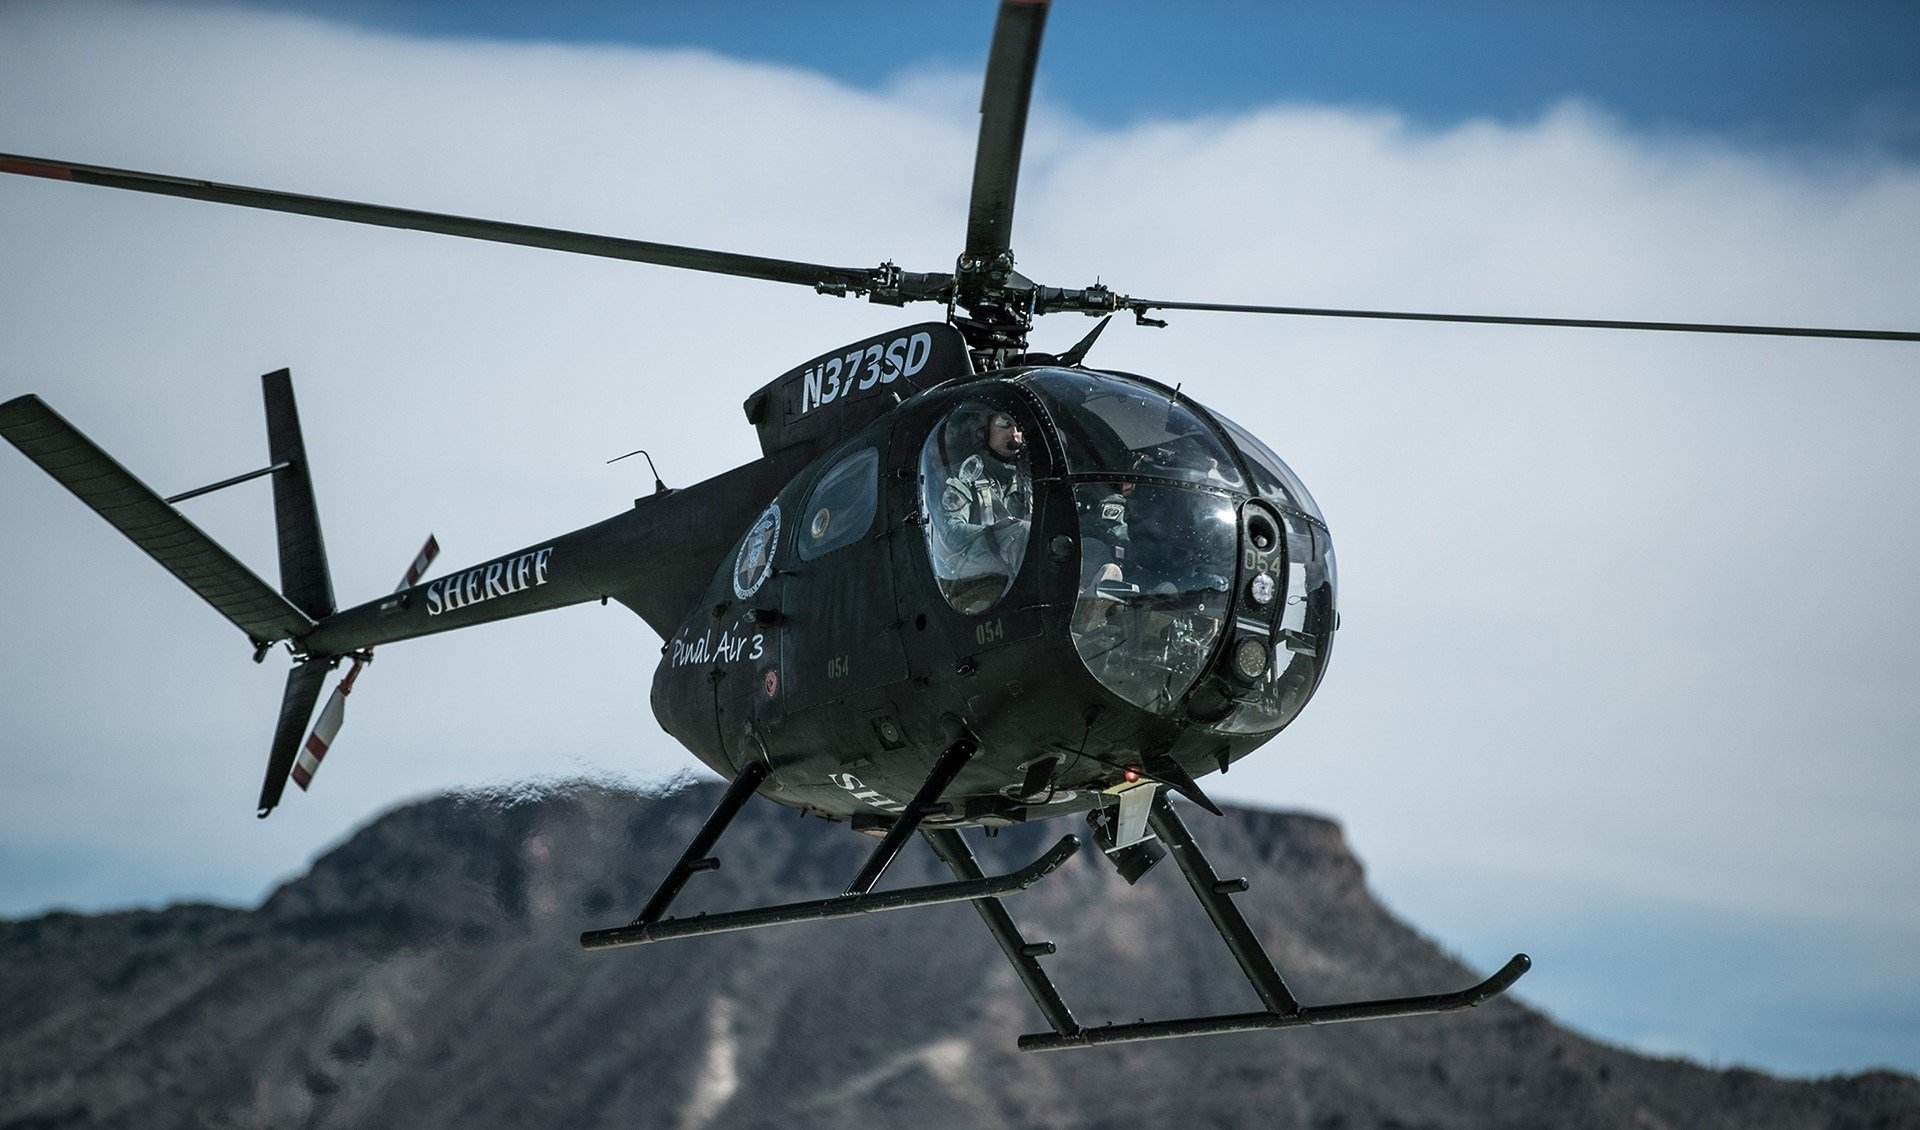 Operation Western Eagle pairs Pinal County Sheriff's Office aviation assets with Tucson Sector Border Patrol agents in an effort to disrupt and degrade illicit activity and make Arizona border communities safer. (Source: U.S. CBP)